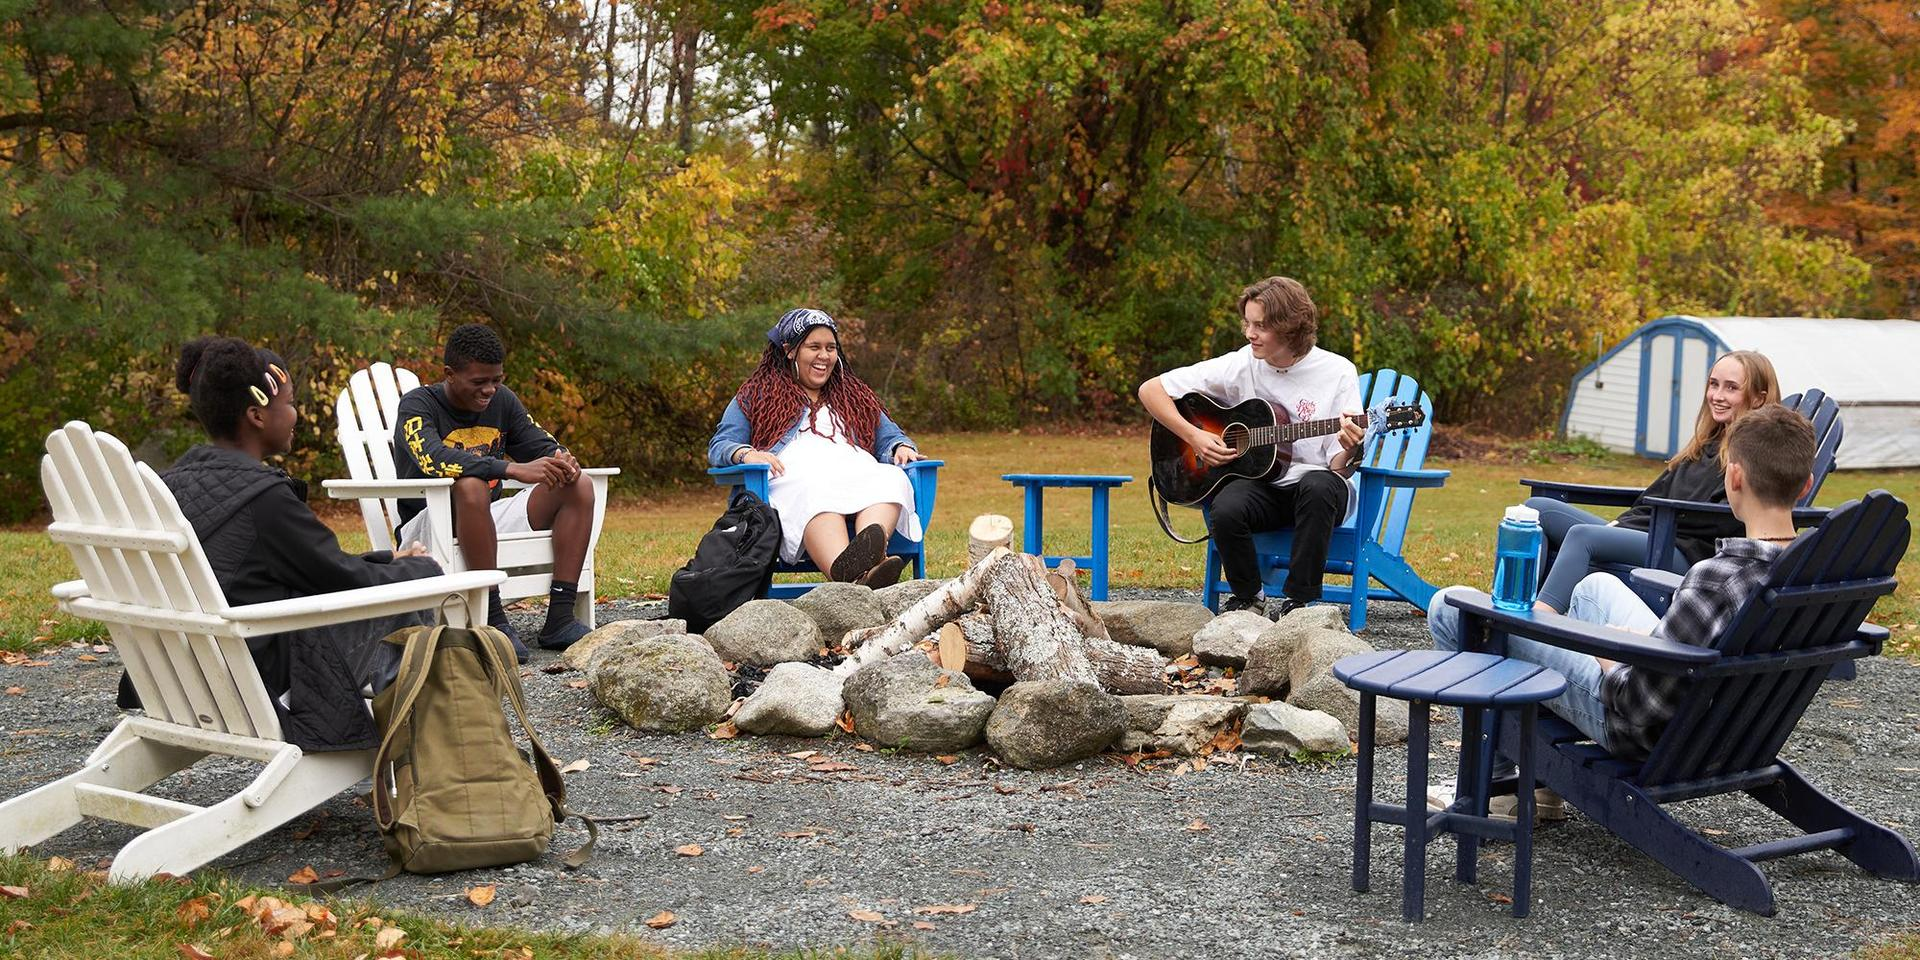 A group of students sitting around a fire pit.